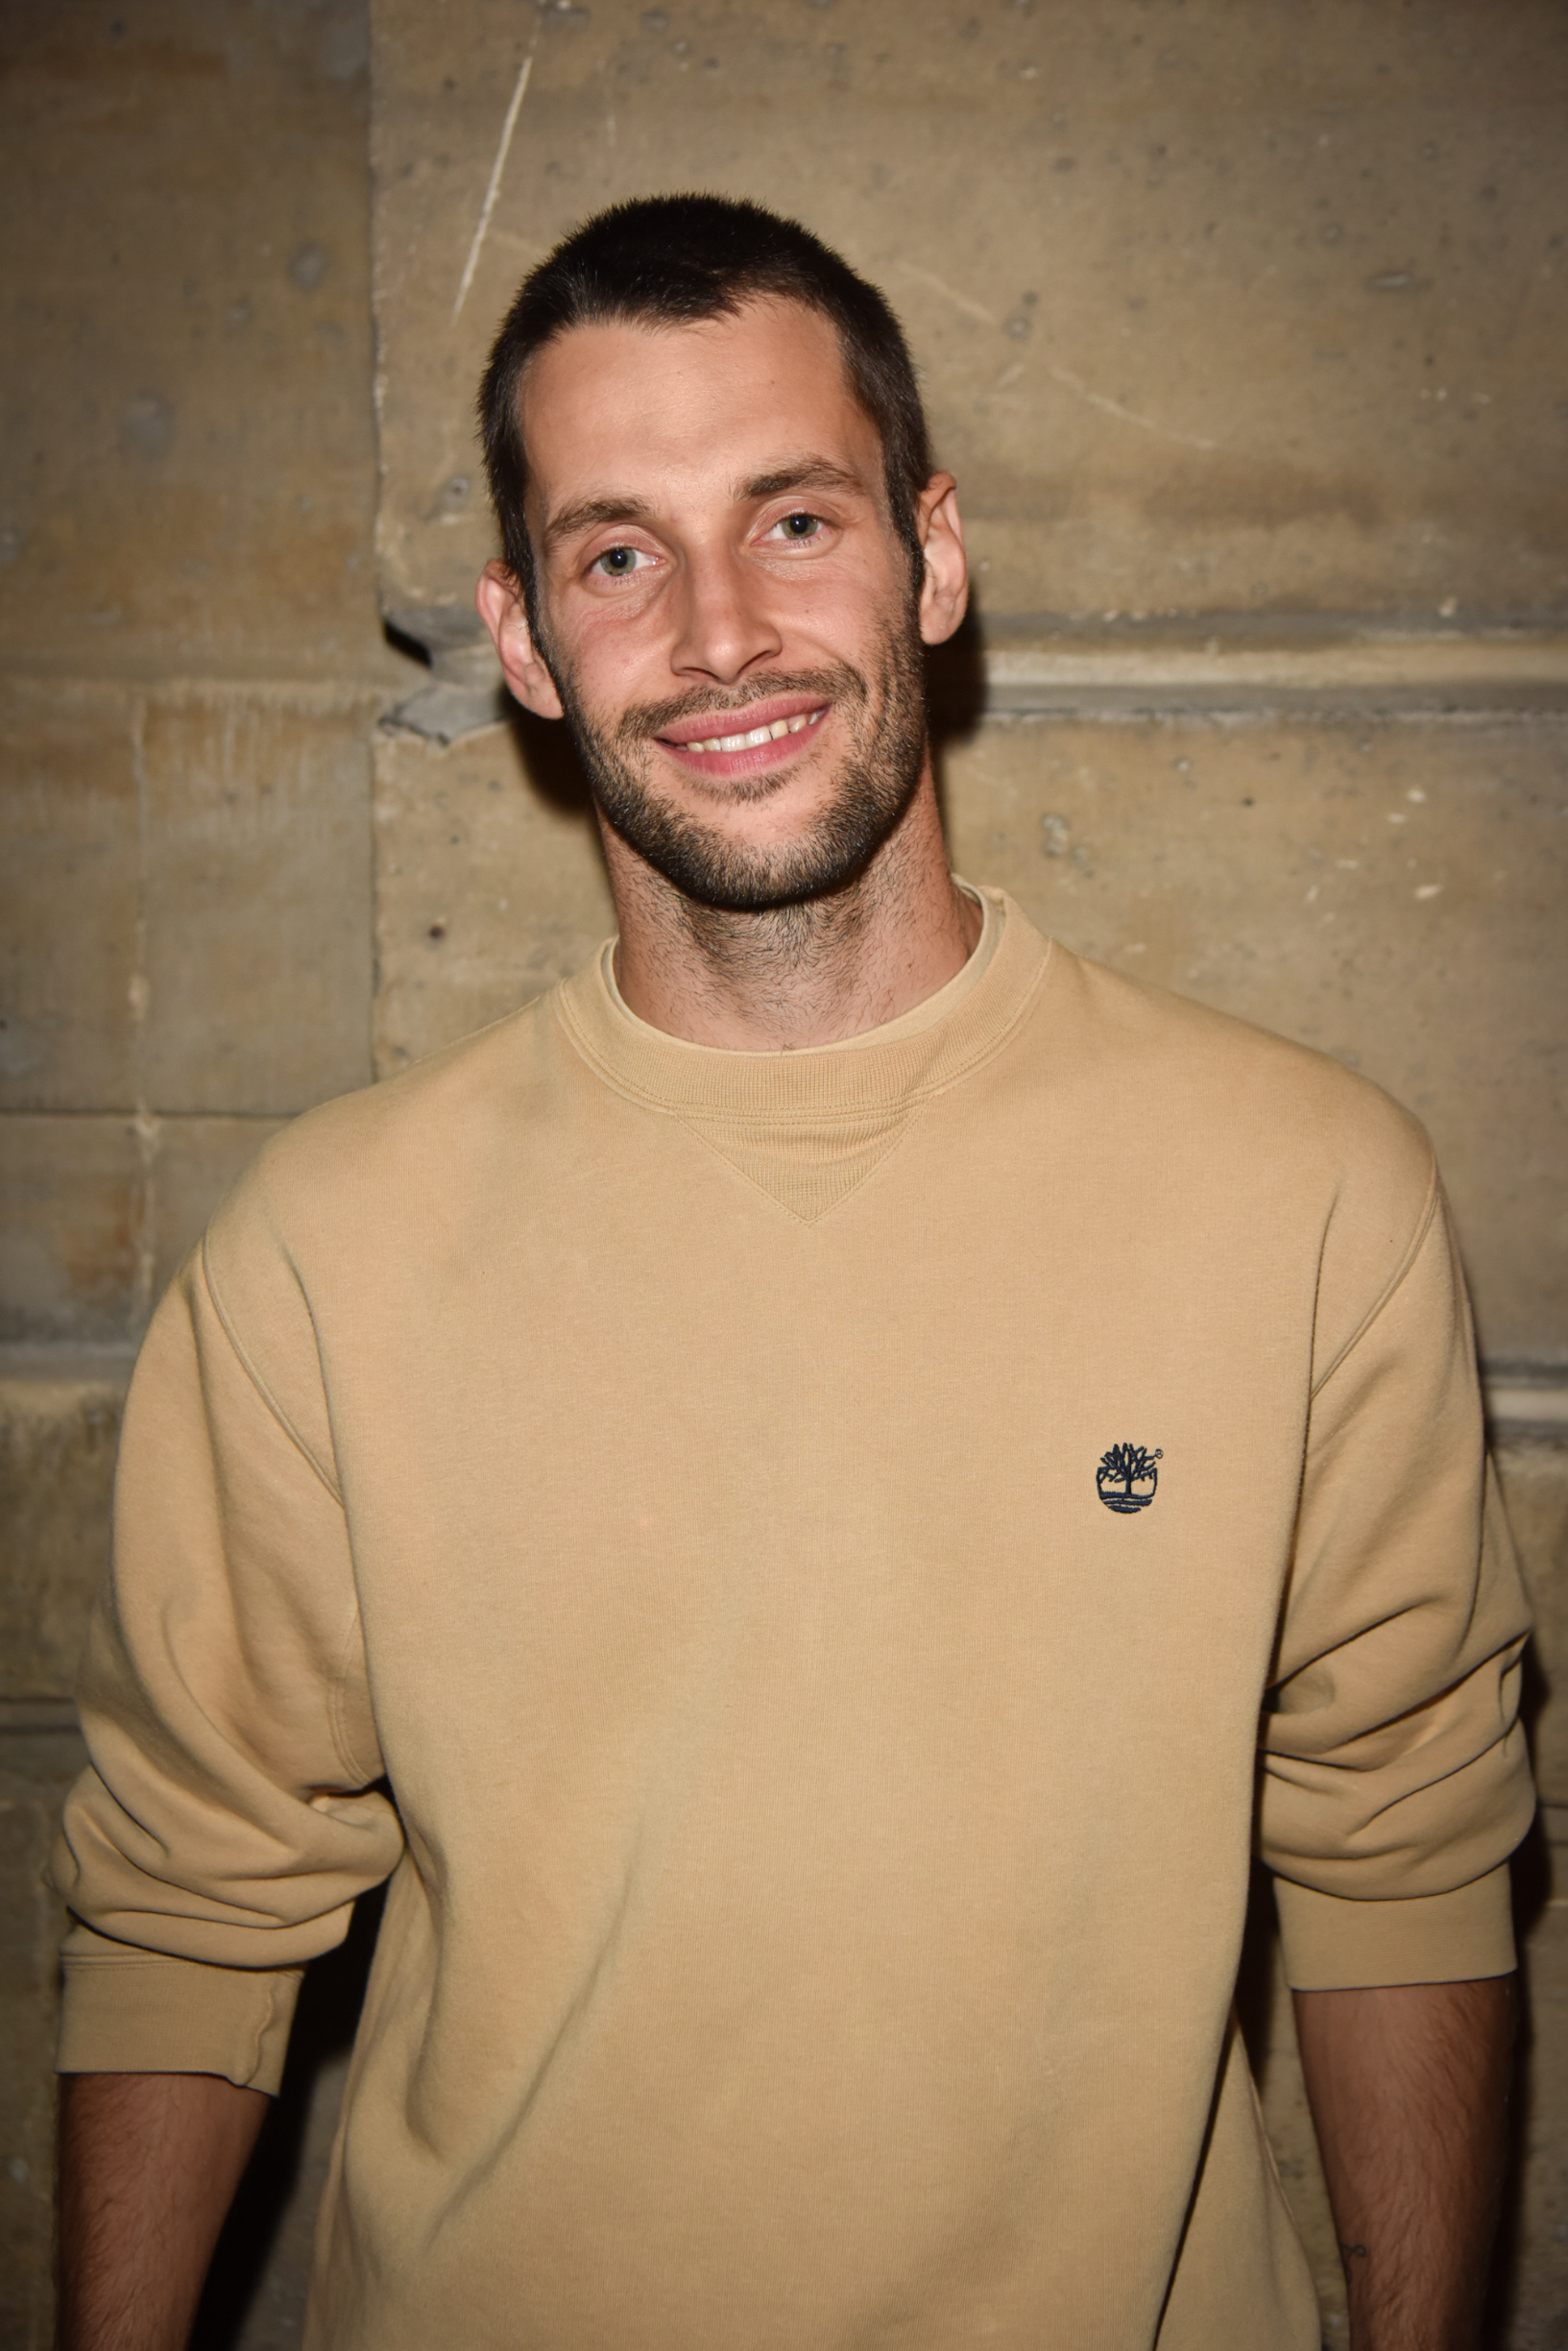 Simon Porte Jacquemus attends the Jacquemus show as part of the Paris Fashion Week Womenswear Spring/Summer 2018 on September 25, 2017 in Paris, France.,Image: 350559312, License: Rights-managed, Restrictions: Worldwide rights, Model Release: no, Credit line: Thomas Floyd / Crystal Pictures / Crystal pictures / Profimedia